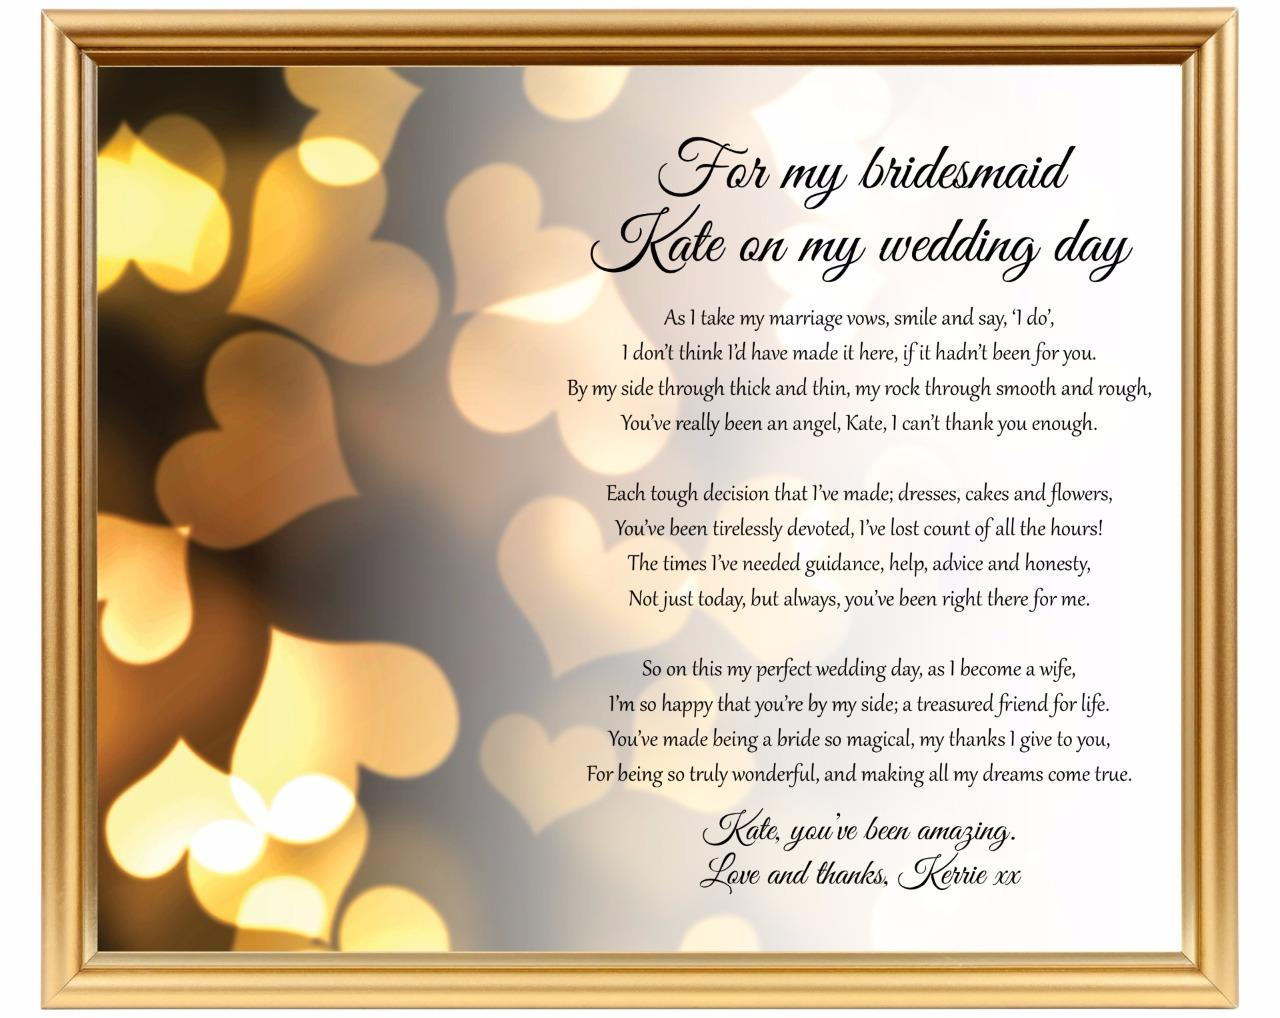 Bridesmaid Gift To Bride On Wedding Day: Thank You For Being My Bridesmaid